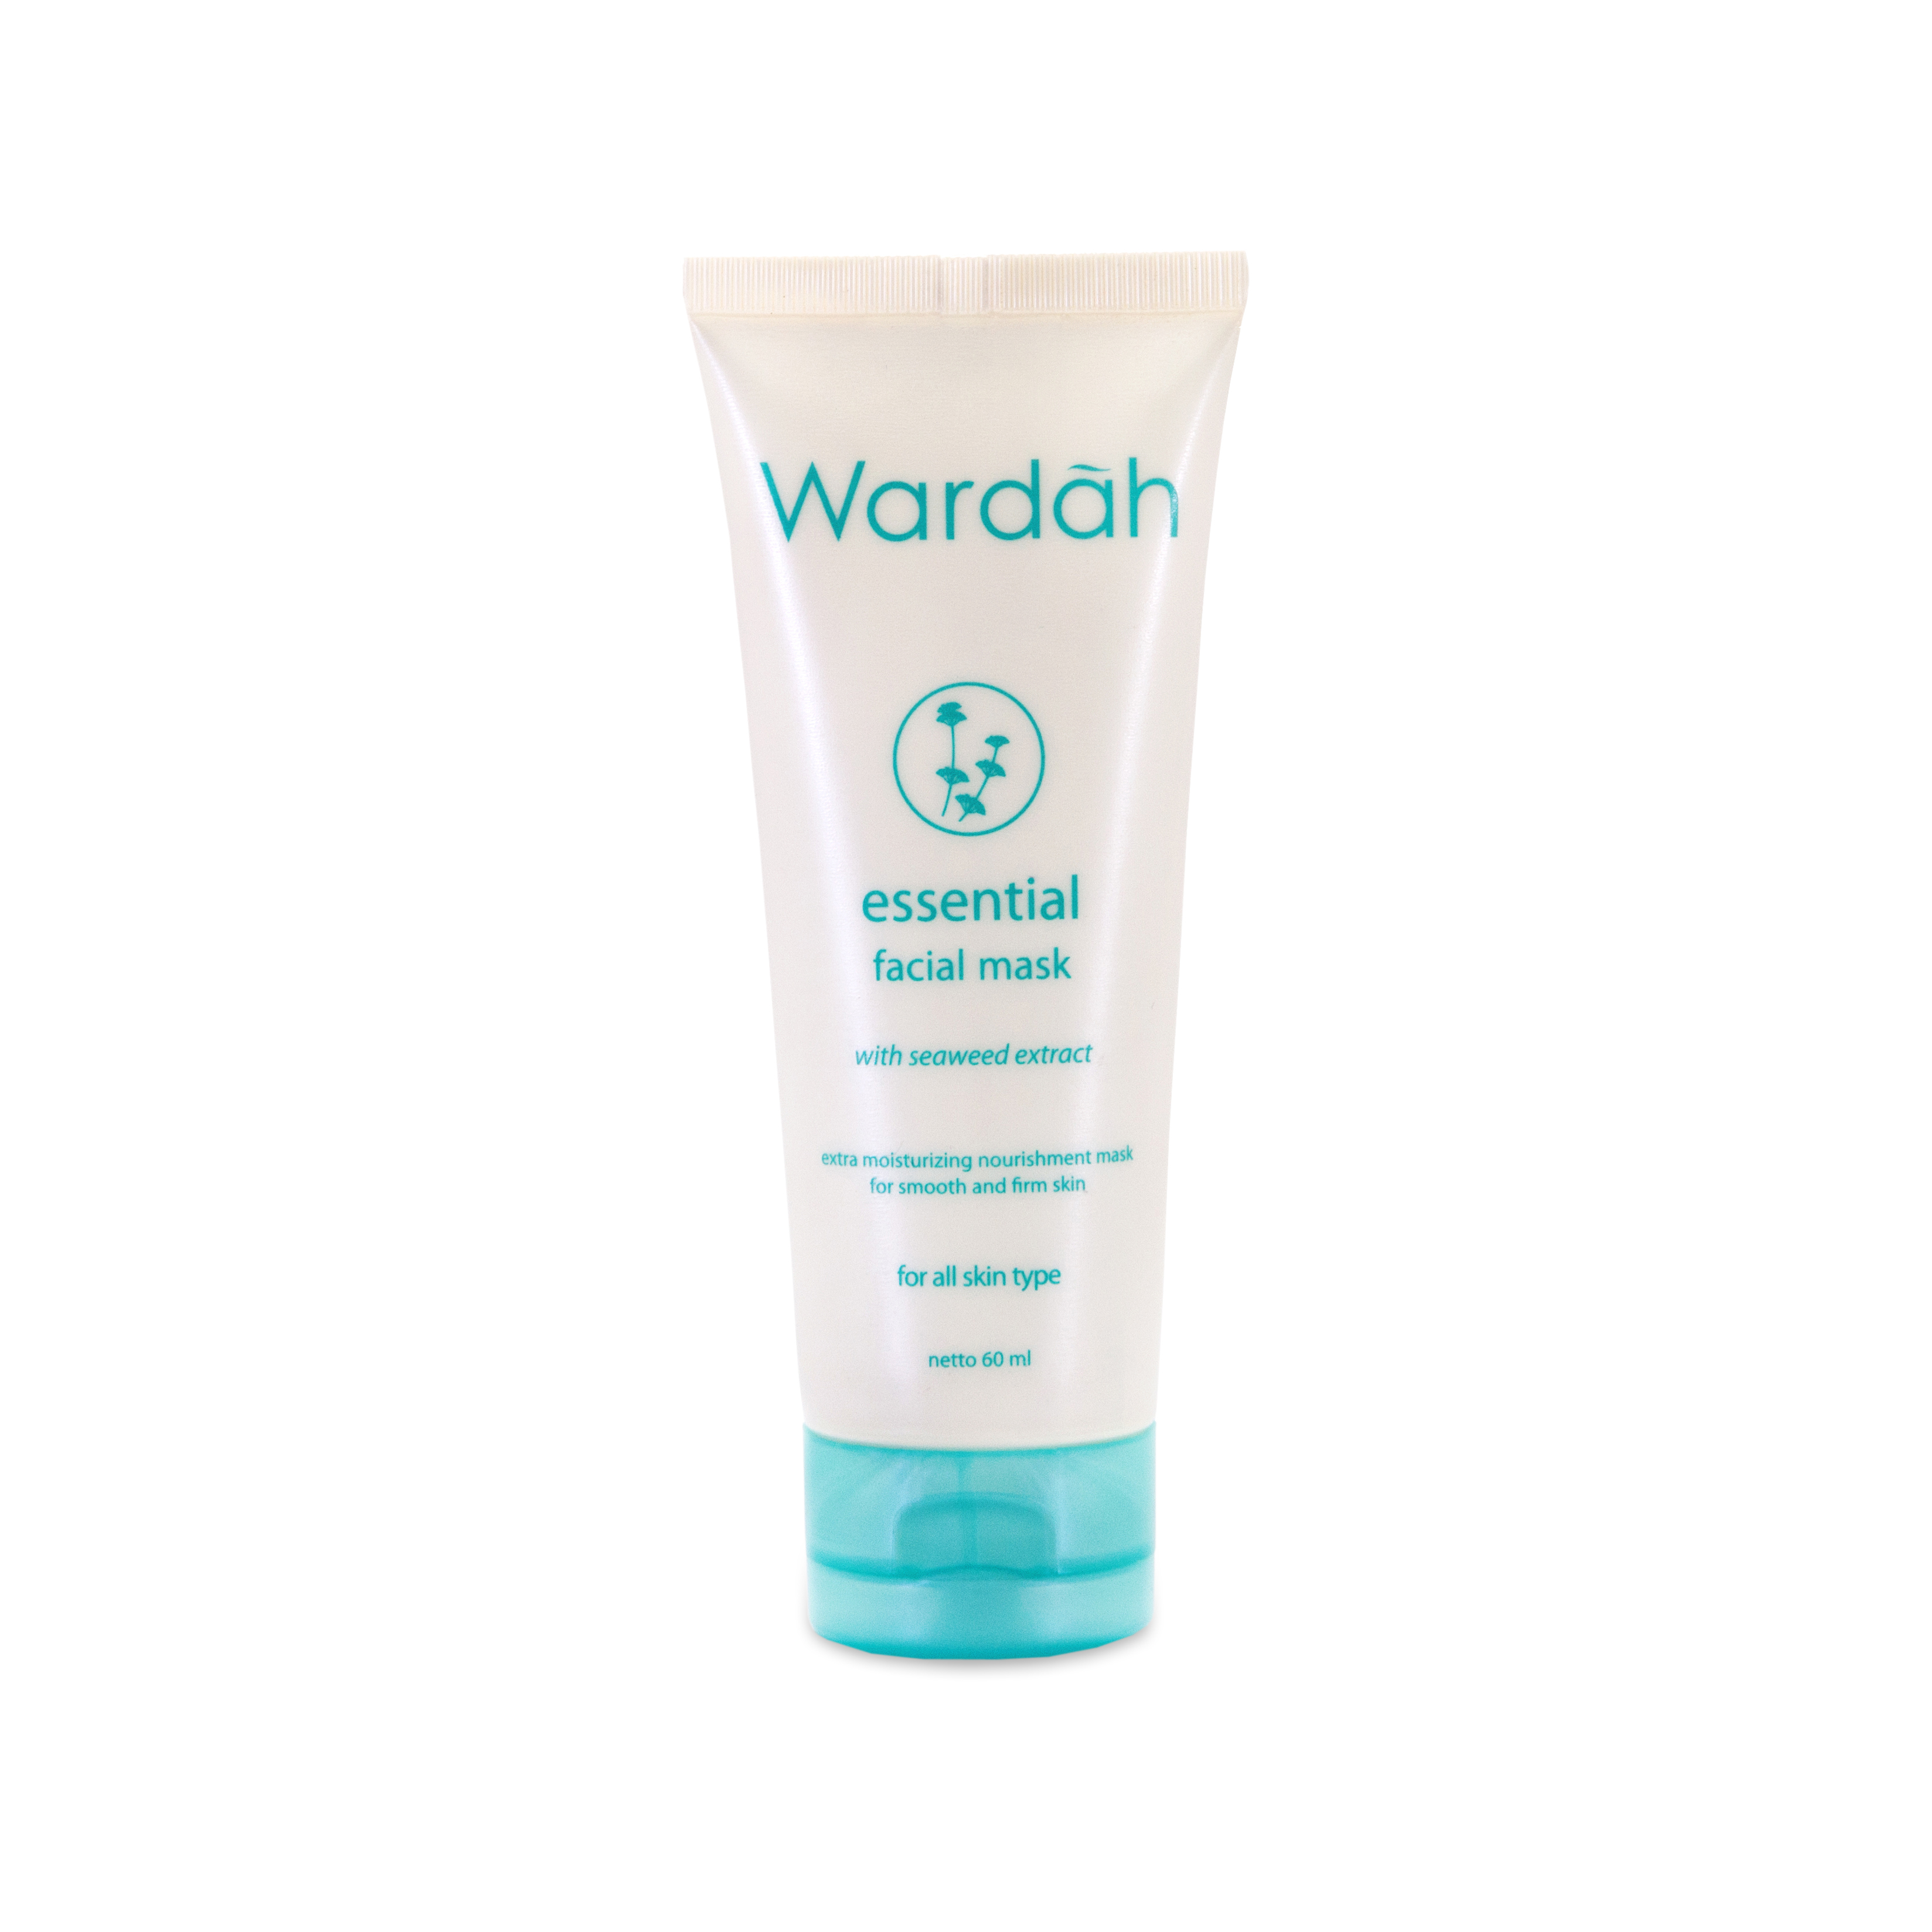 Wardah Nature Daily Seaweed Balancing Facial Mask 60ml